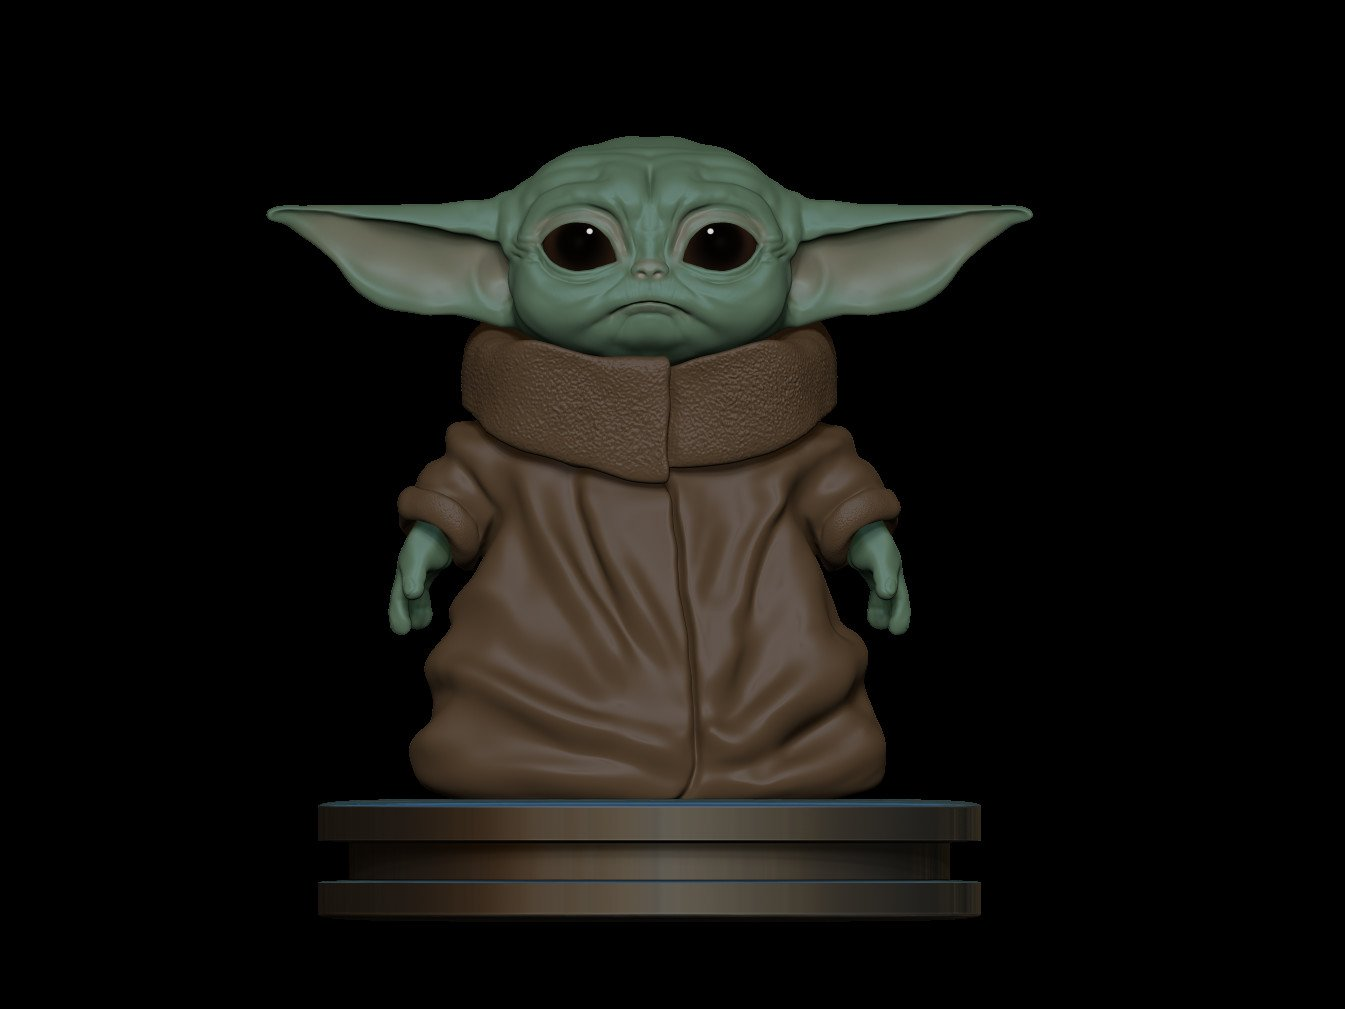 ArtStation - Baby yoda/ the child | Resources